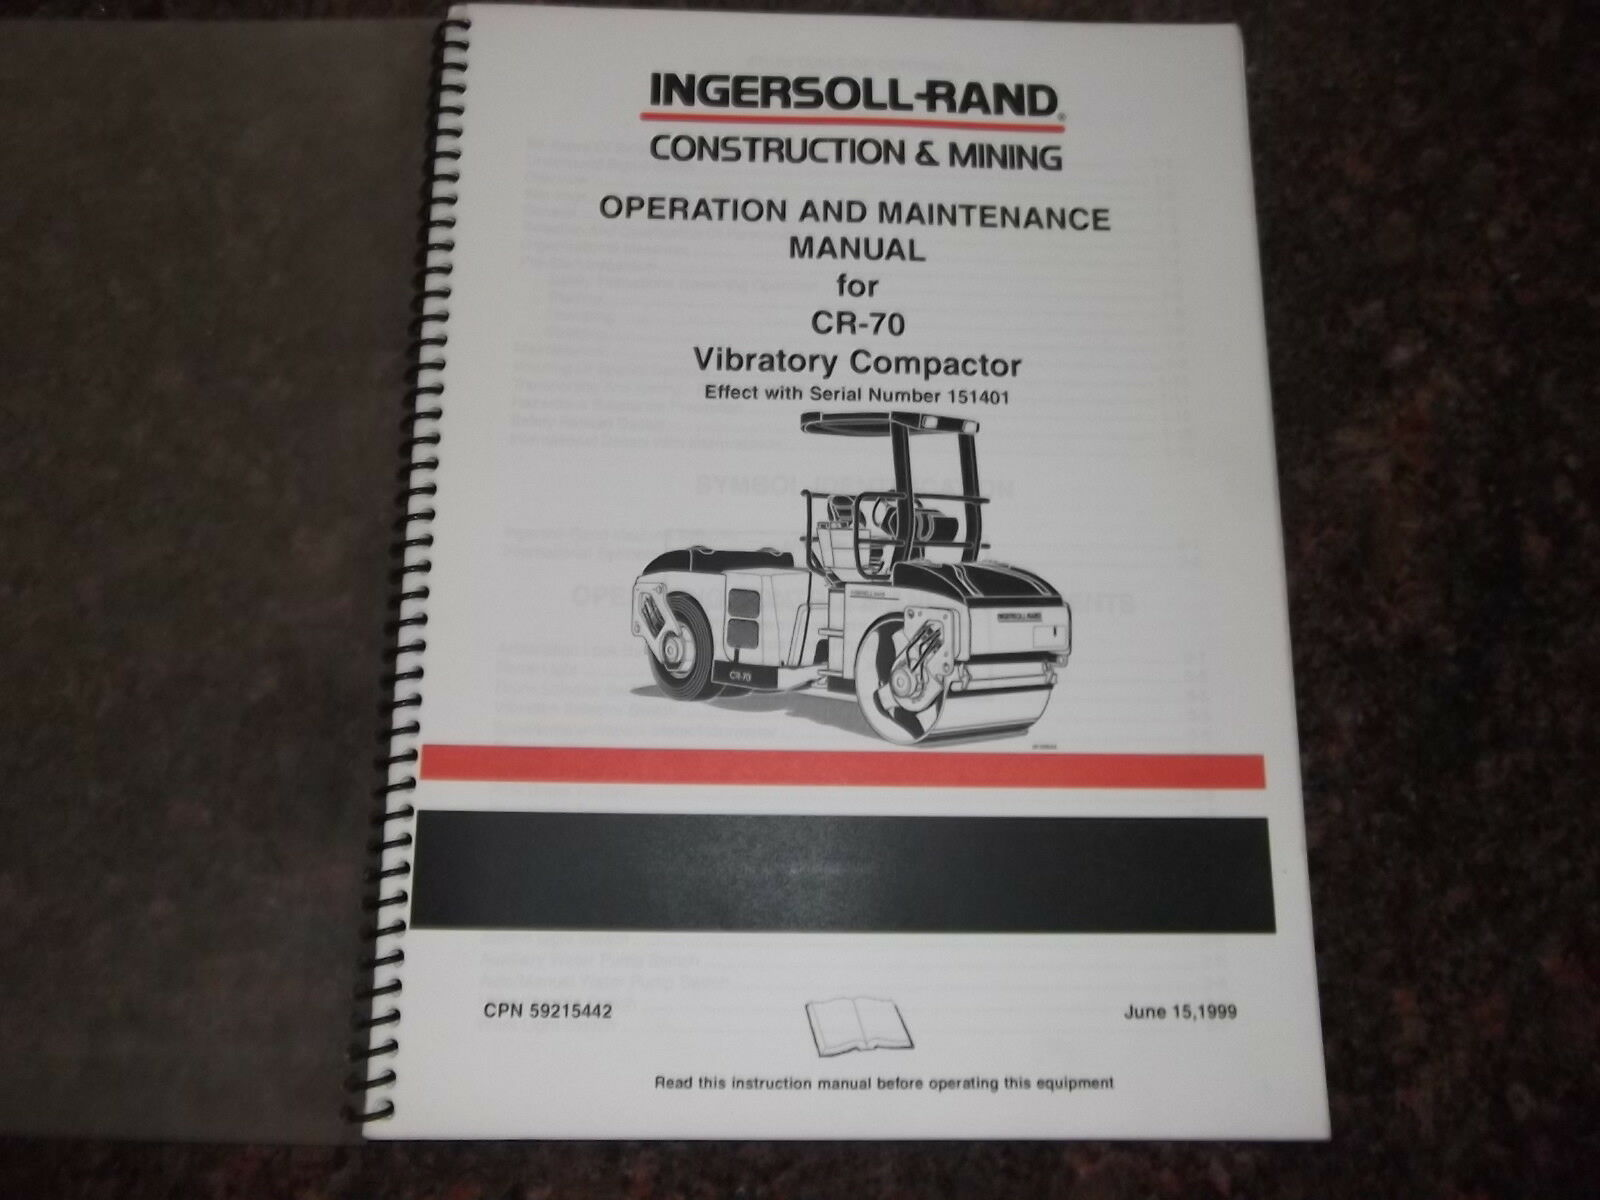 Ingersoll Rand Cr-70 Vibratory Compactor Operation & Maintenance Manual 1  of 5Only 1 available ...